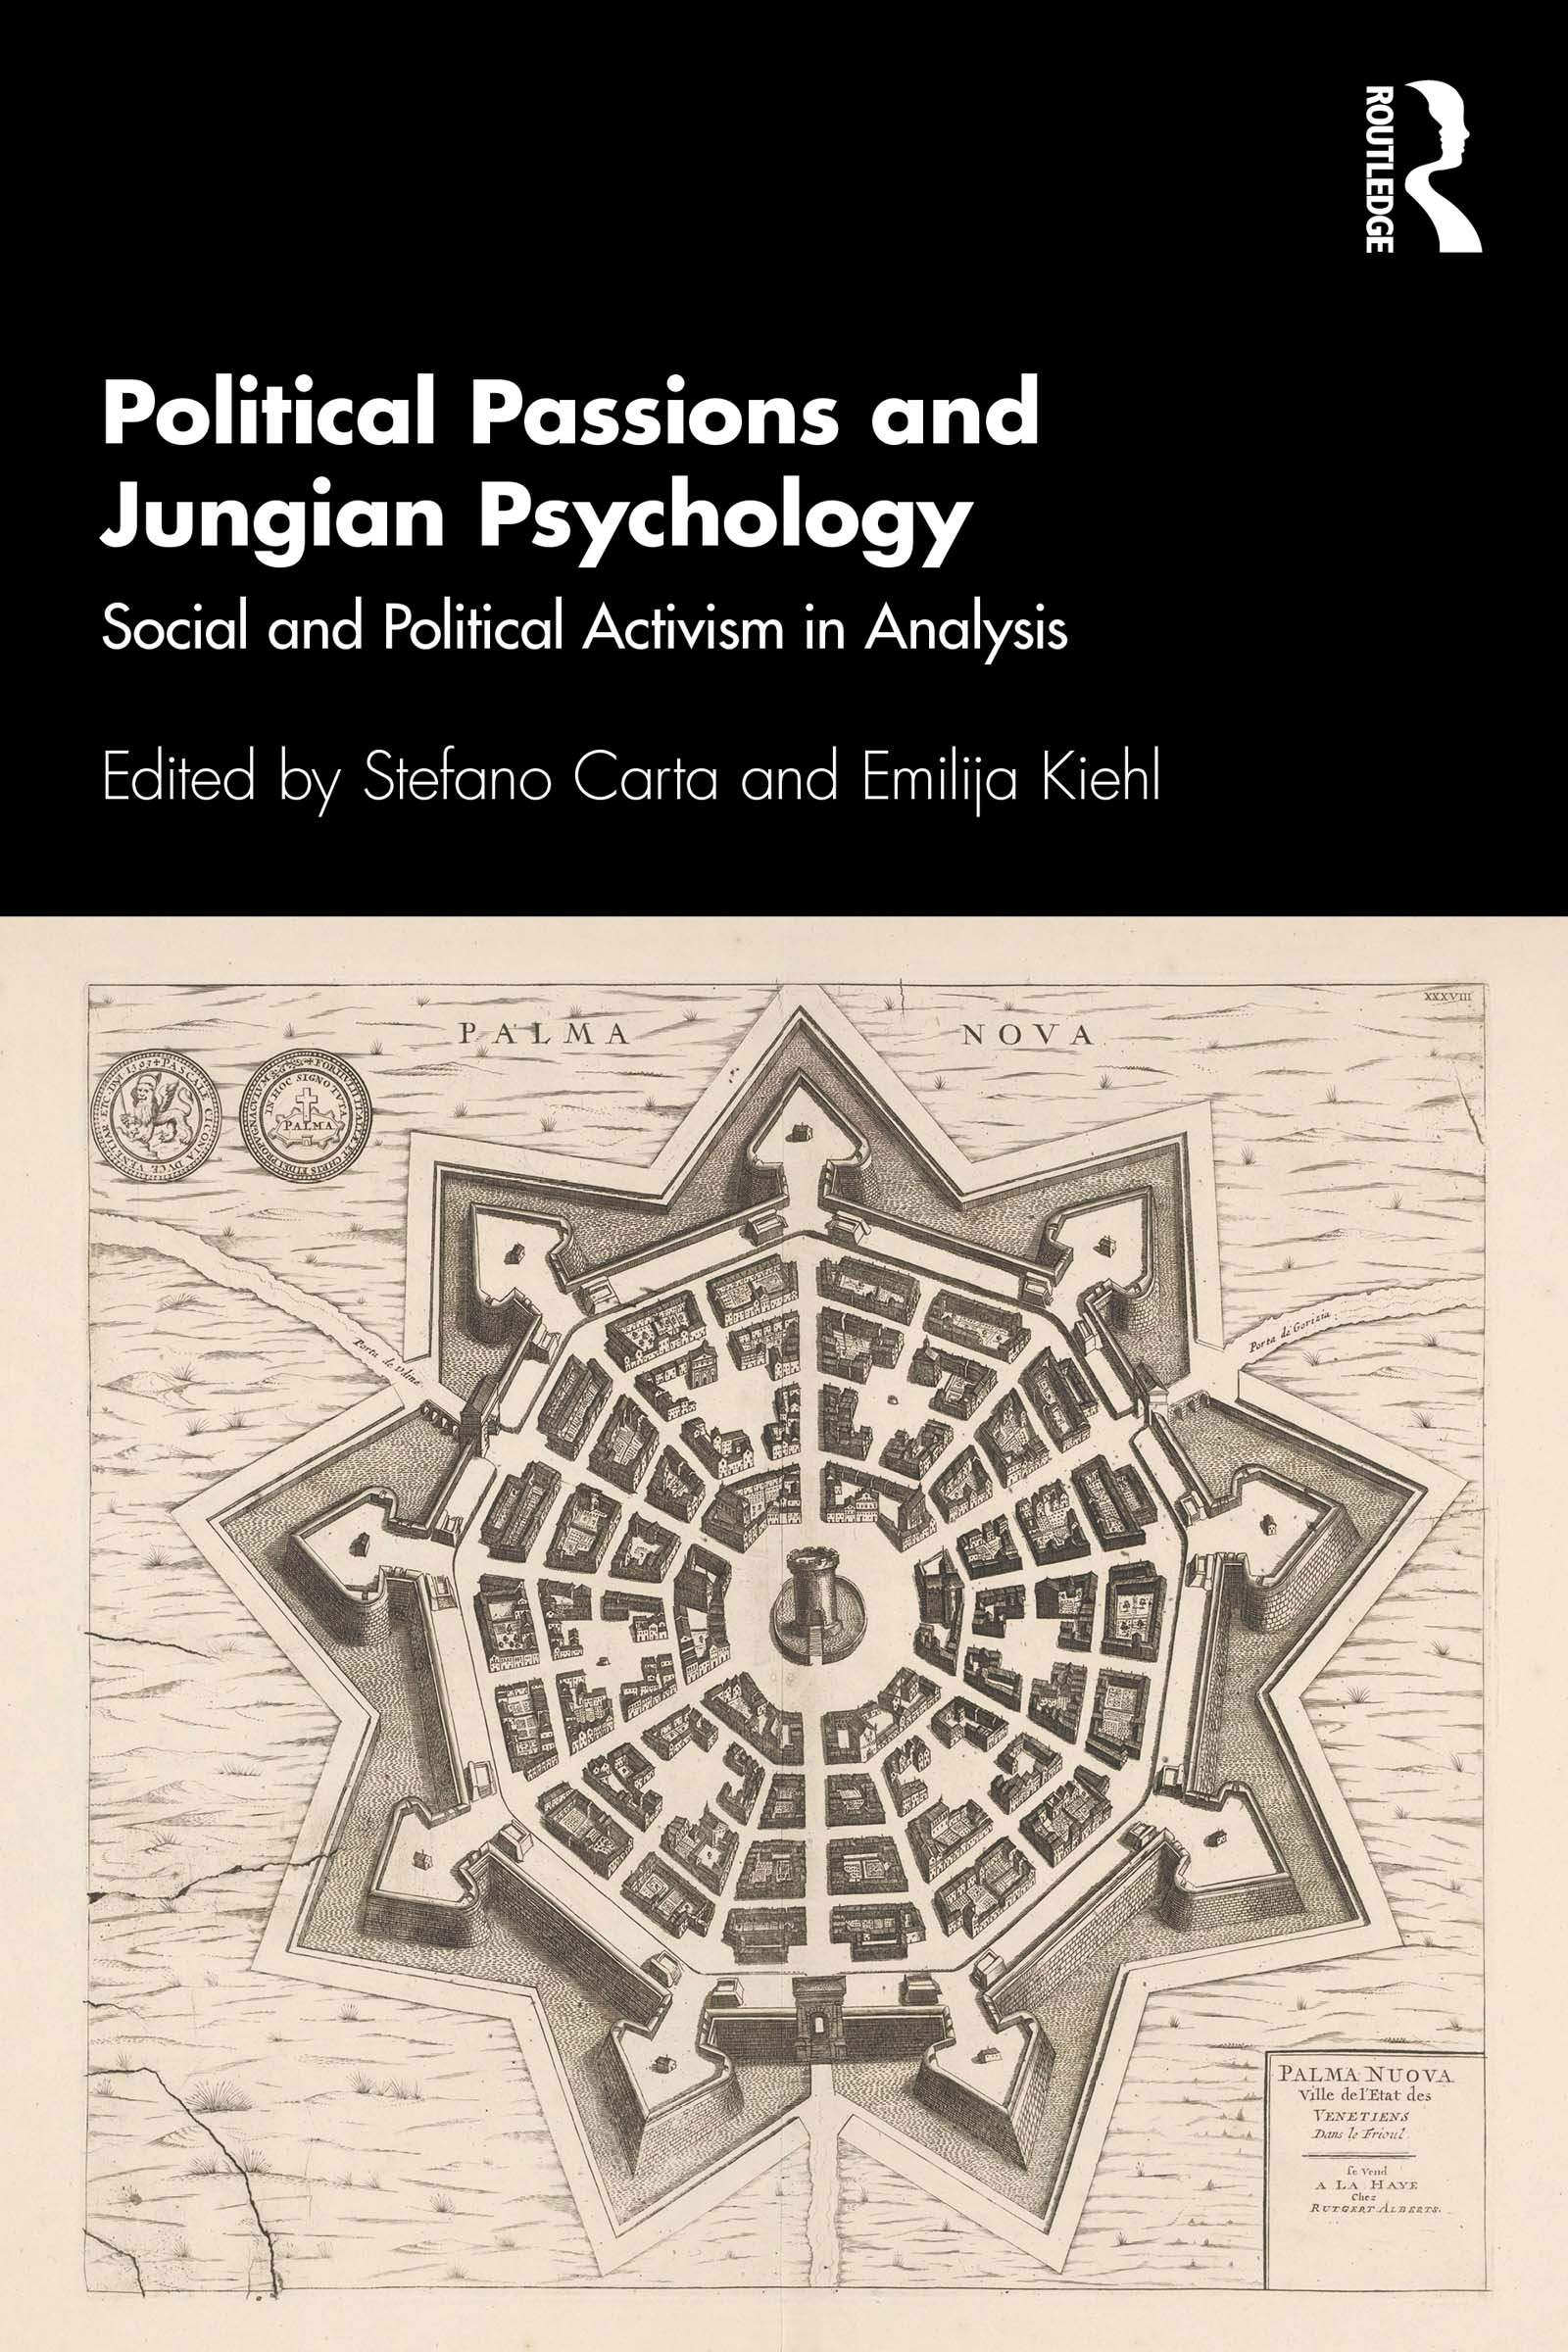 Political Passions and Jungian Psychology